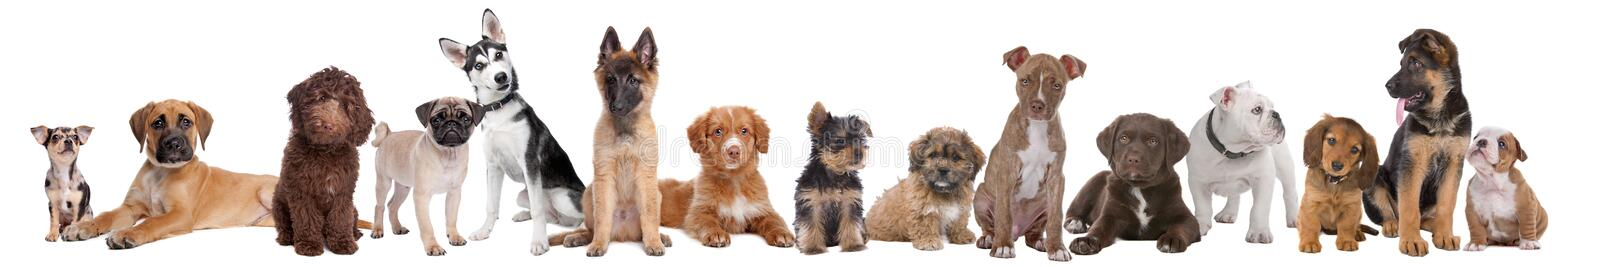 Large group of puppies royalty free stock image